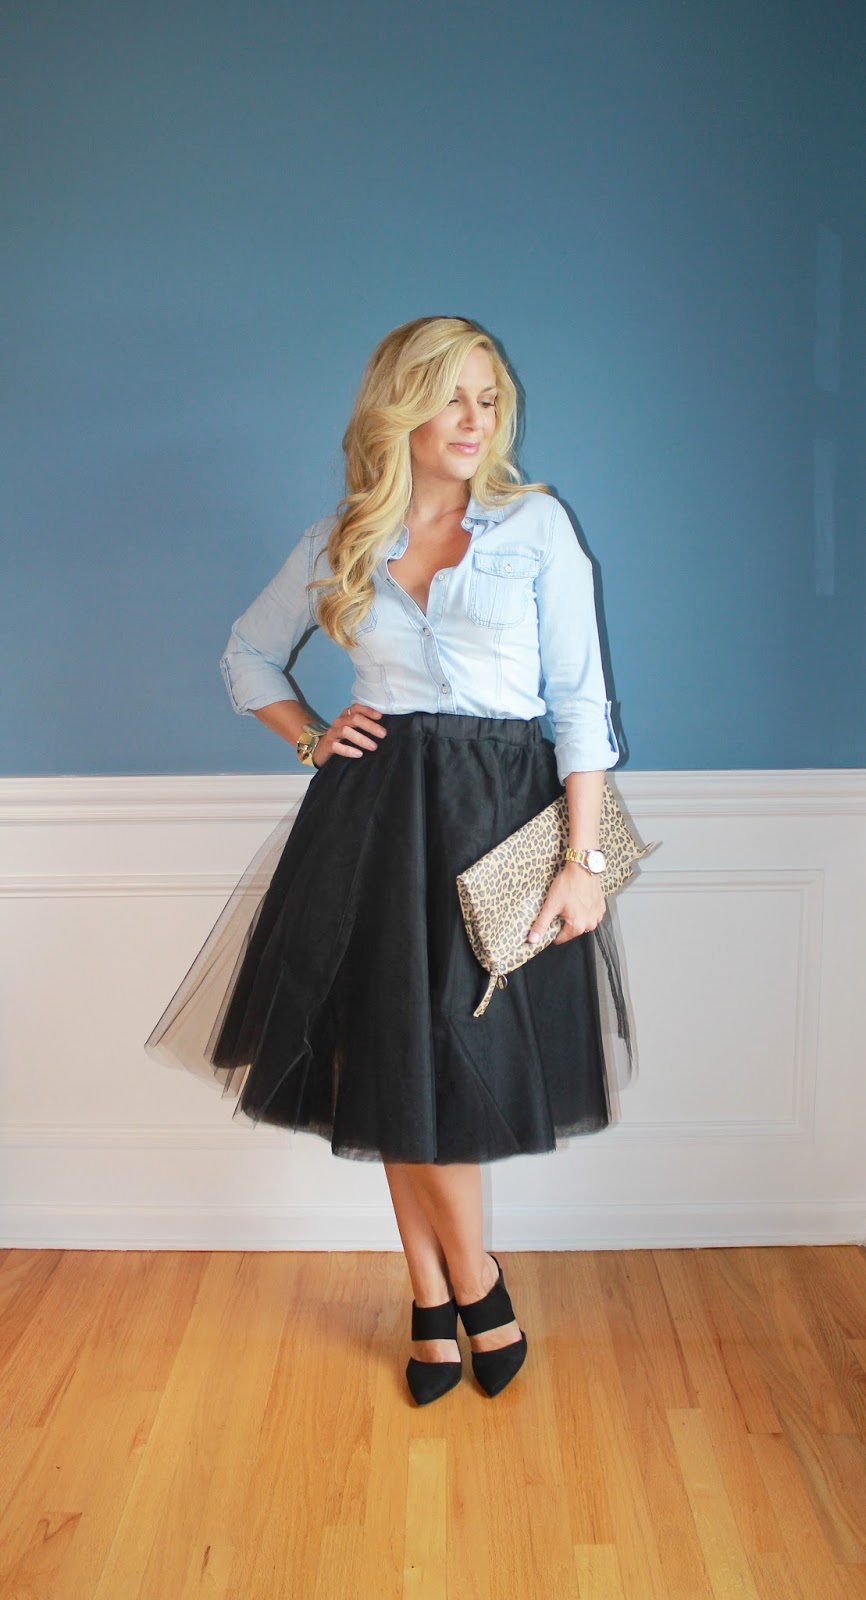 768d98858715a Outfitted411: Dressed Down Tulle...